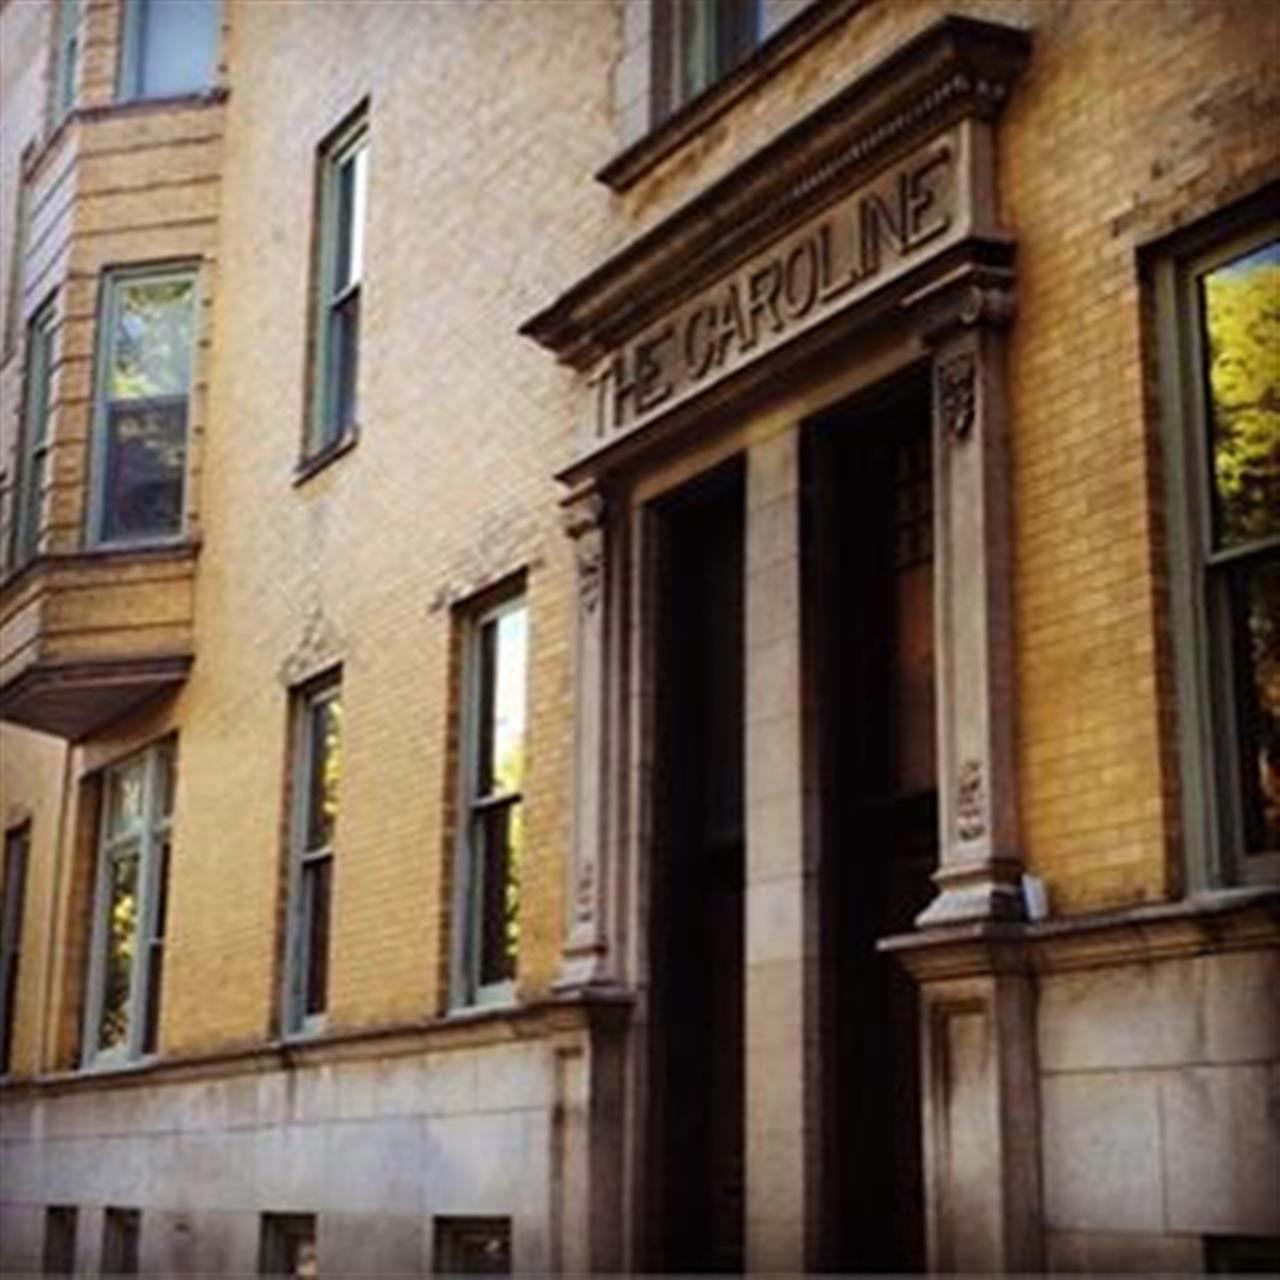 Old Chicago buildings #chicago #leadingrelocal #oldchicago #historic